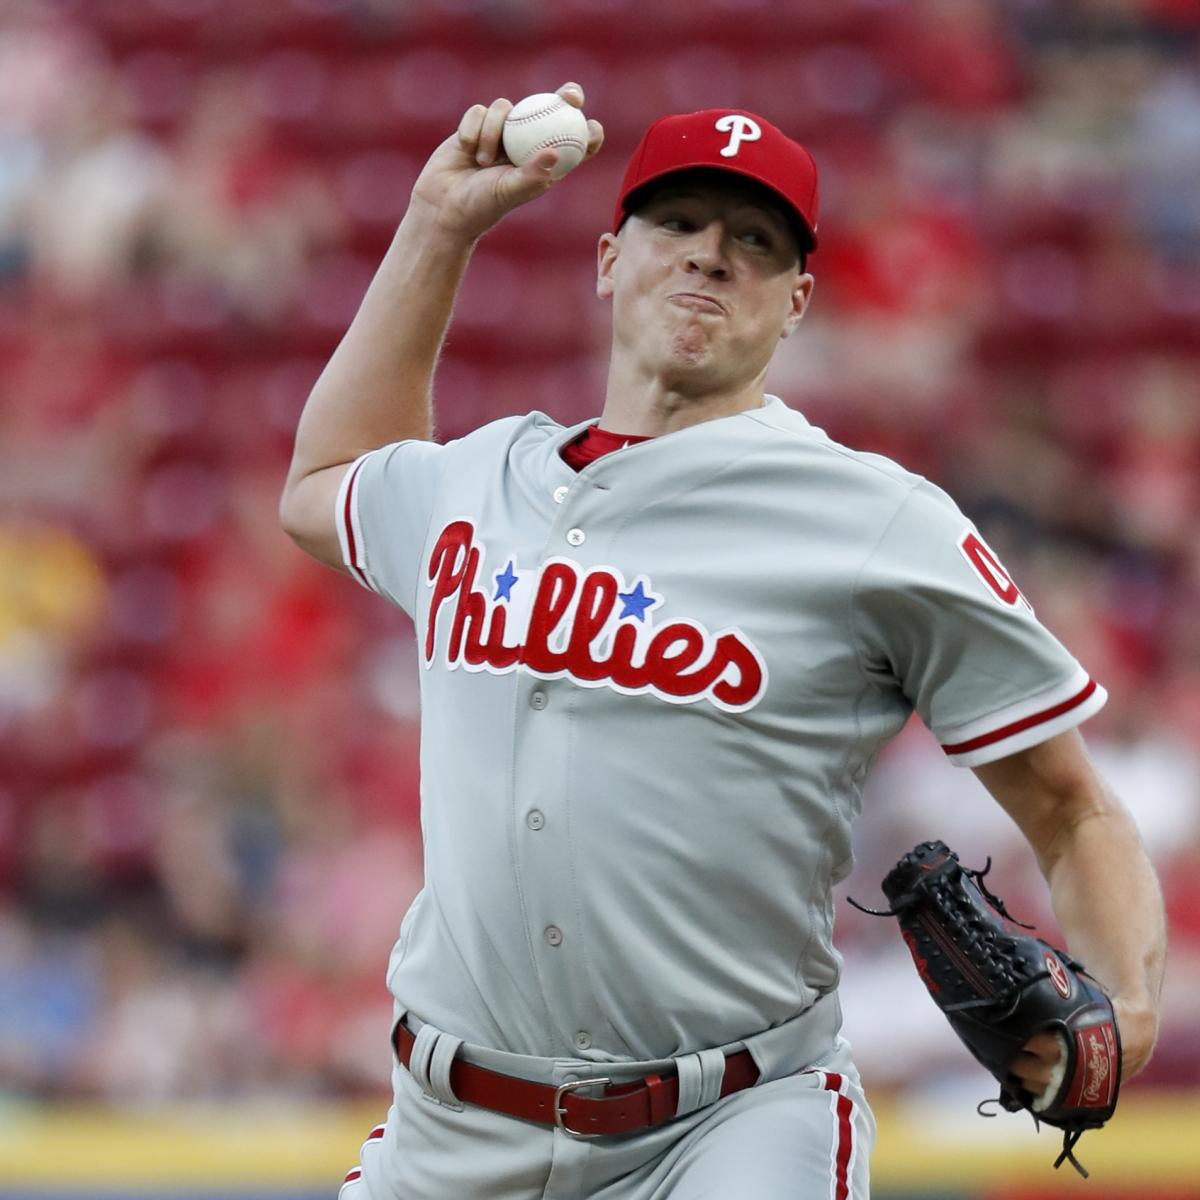 Philadephia Phillies vs. Arizona Diamondbacks Odds, Analysis, MLB Betting Pick